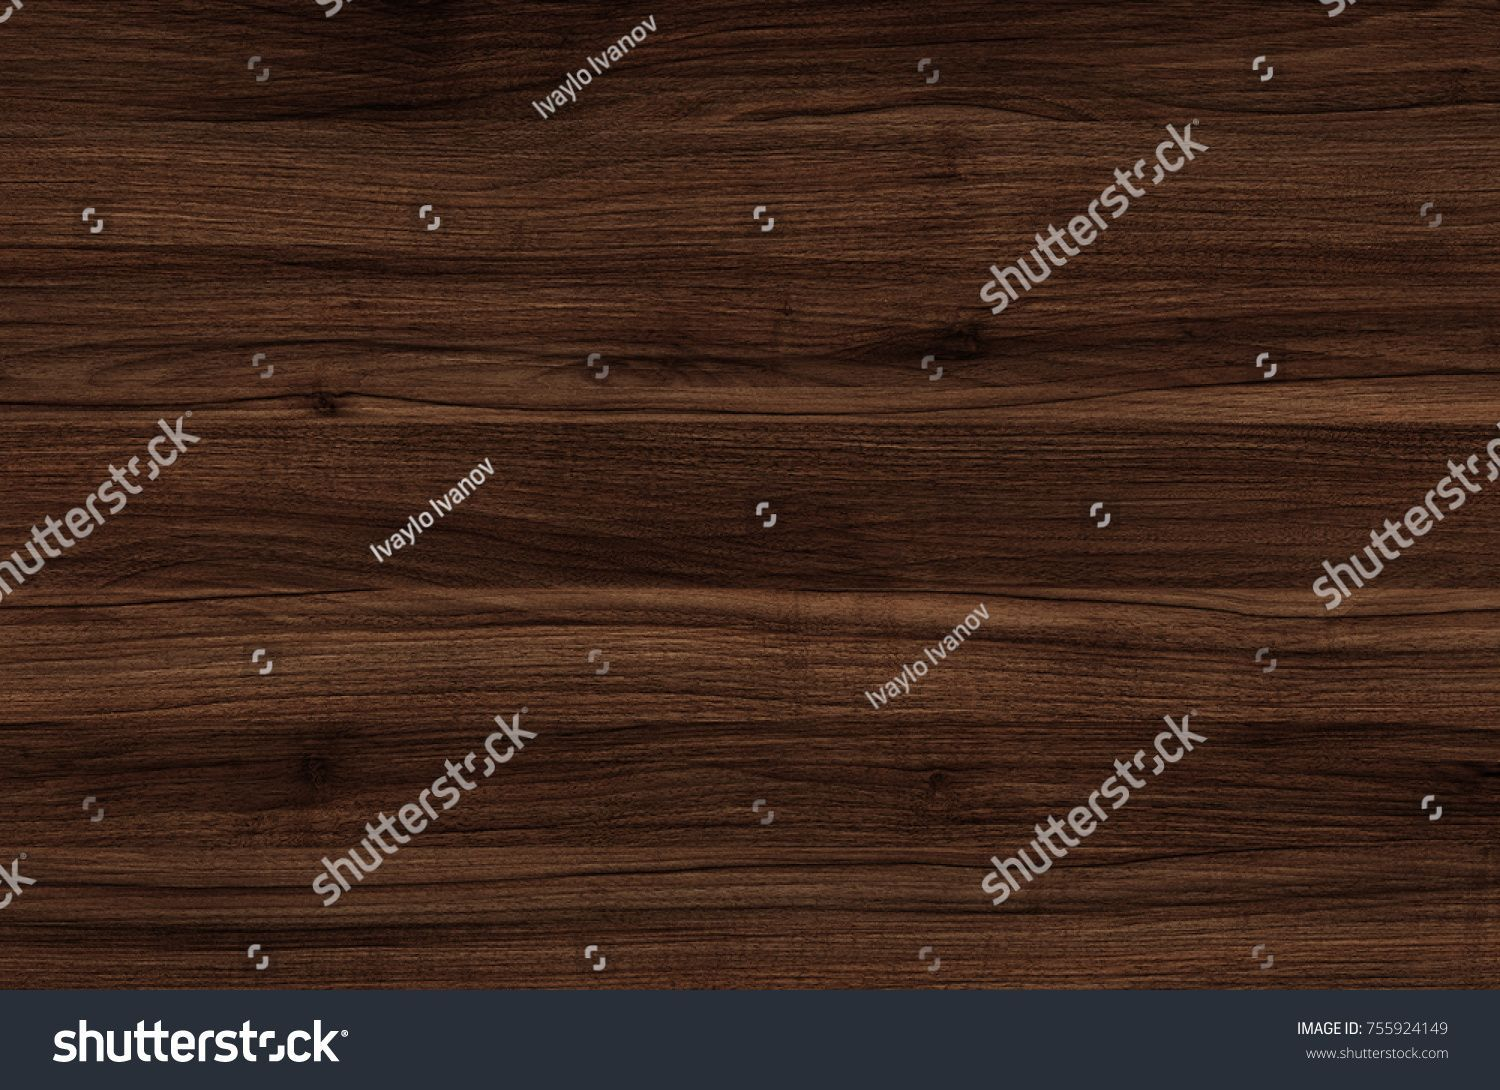 Brown wood texture. Abstract wood texture background. #Sponsored , #Affiliate, #wood#Brown#texture#background #woodtexturebackground Brown wood texture. Abstract wood texture background. #Sponsored , #Affiliate, #wood#Brown#texture#background #woodtexturebackground